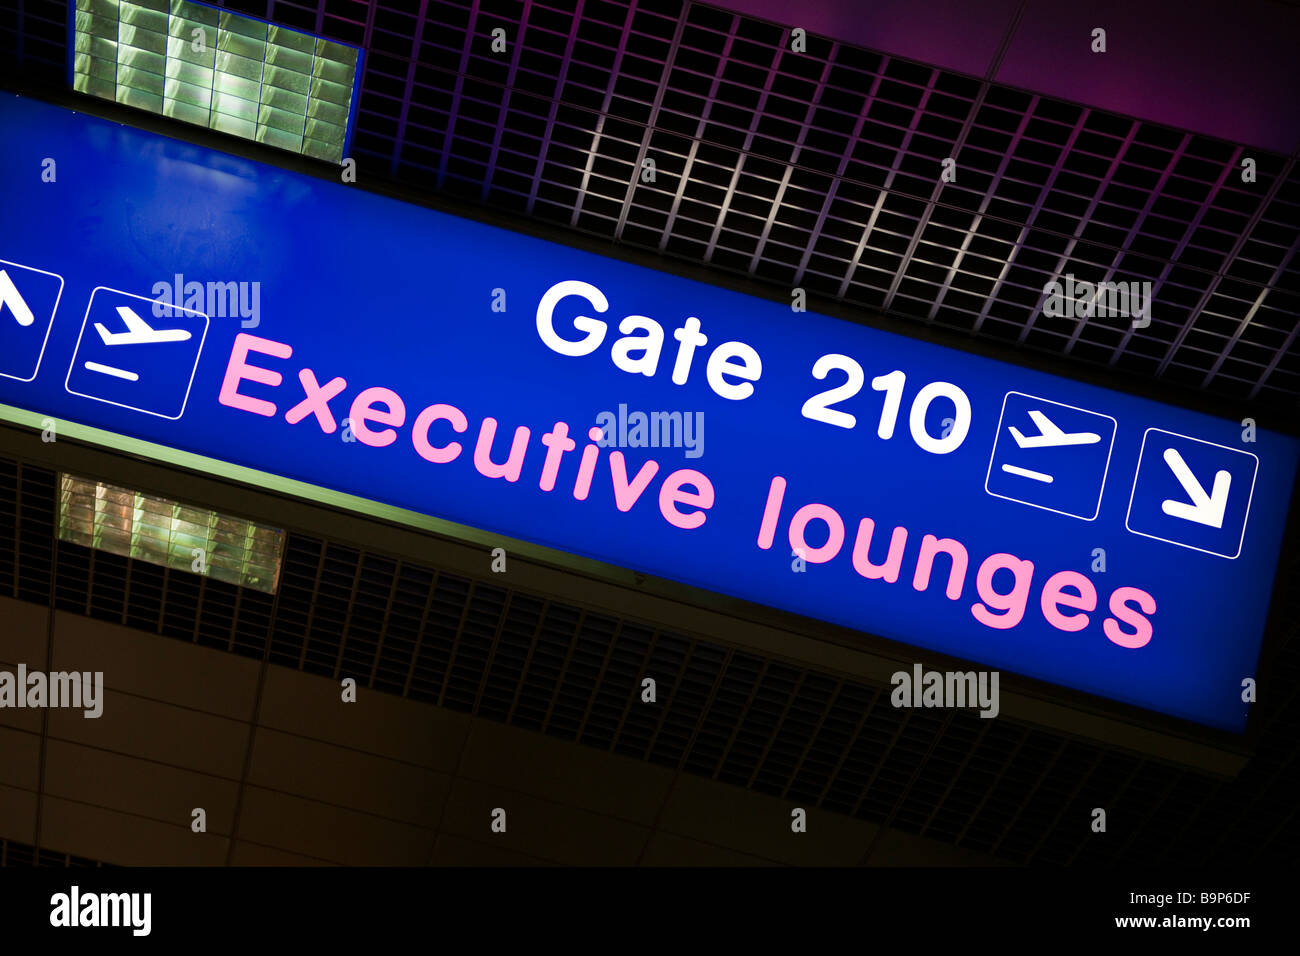 Manchester Airport UK passenger information sign for Executive Lounges - Stock Image